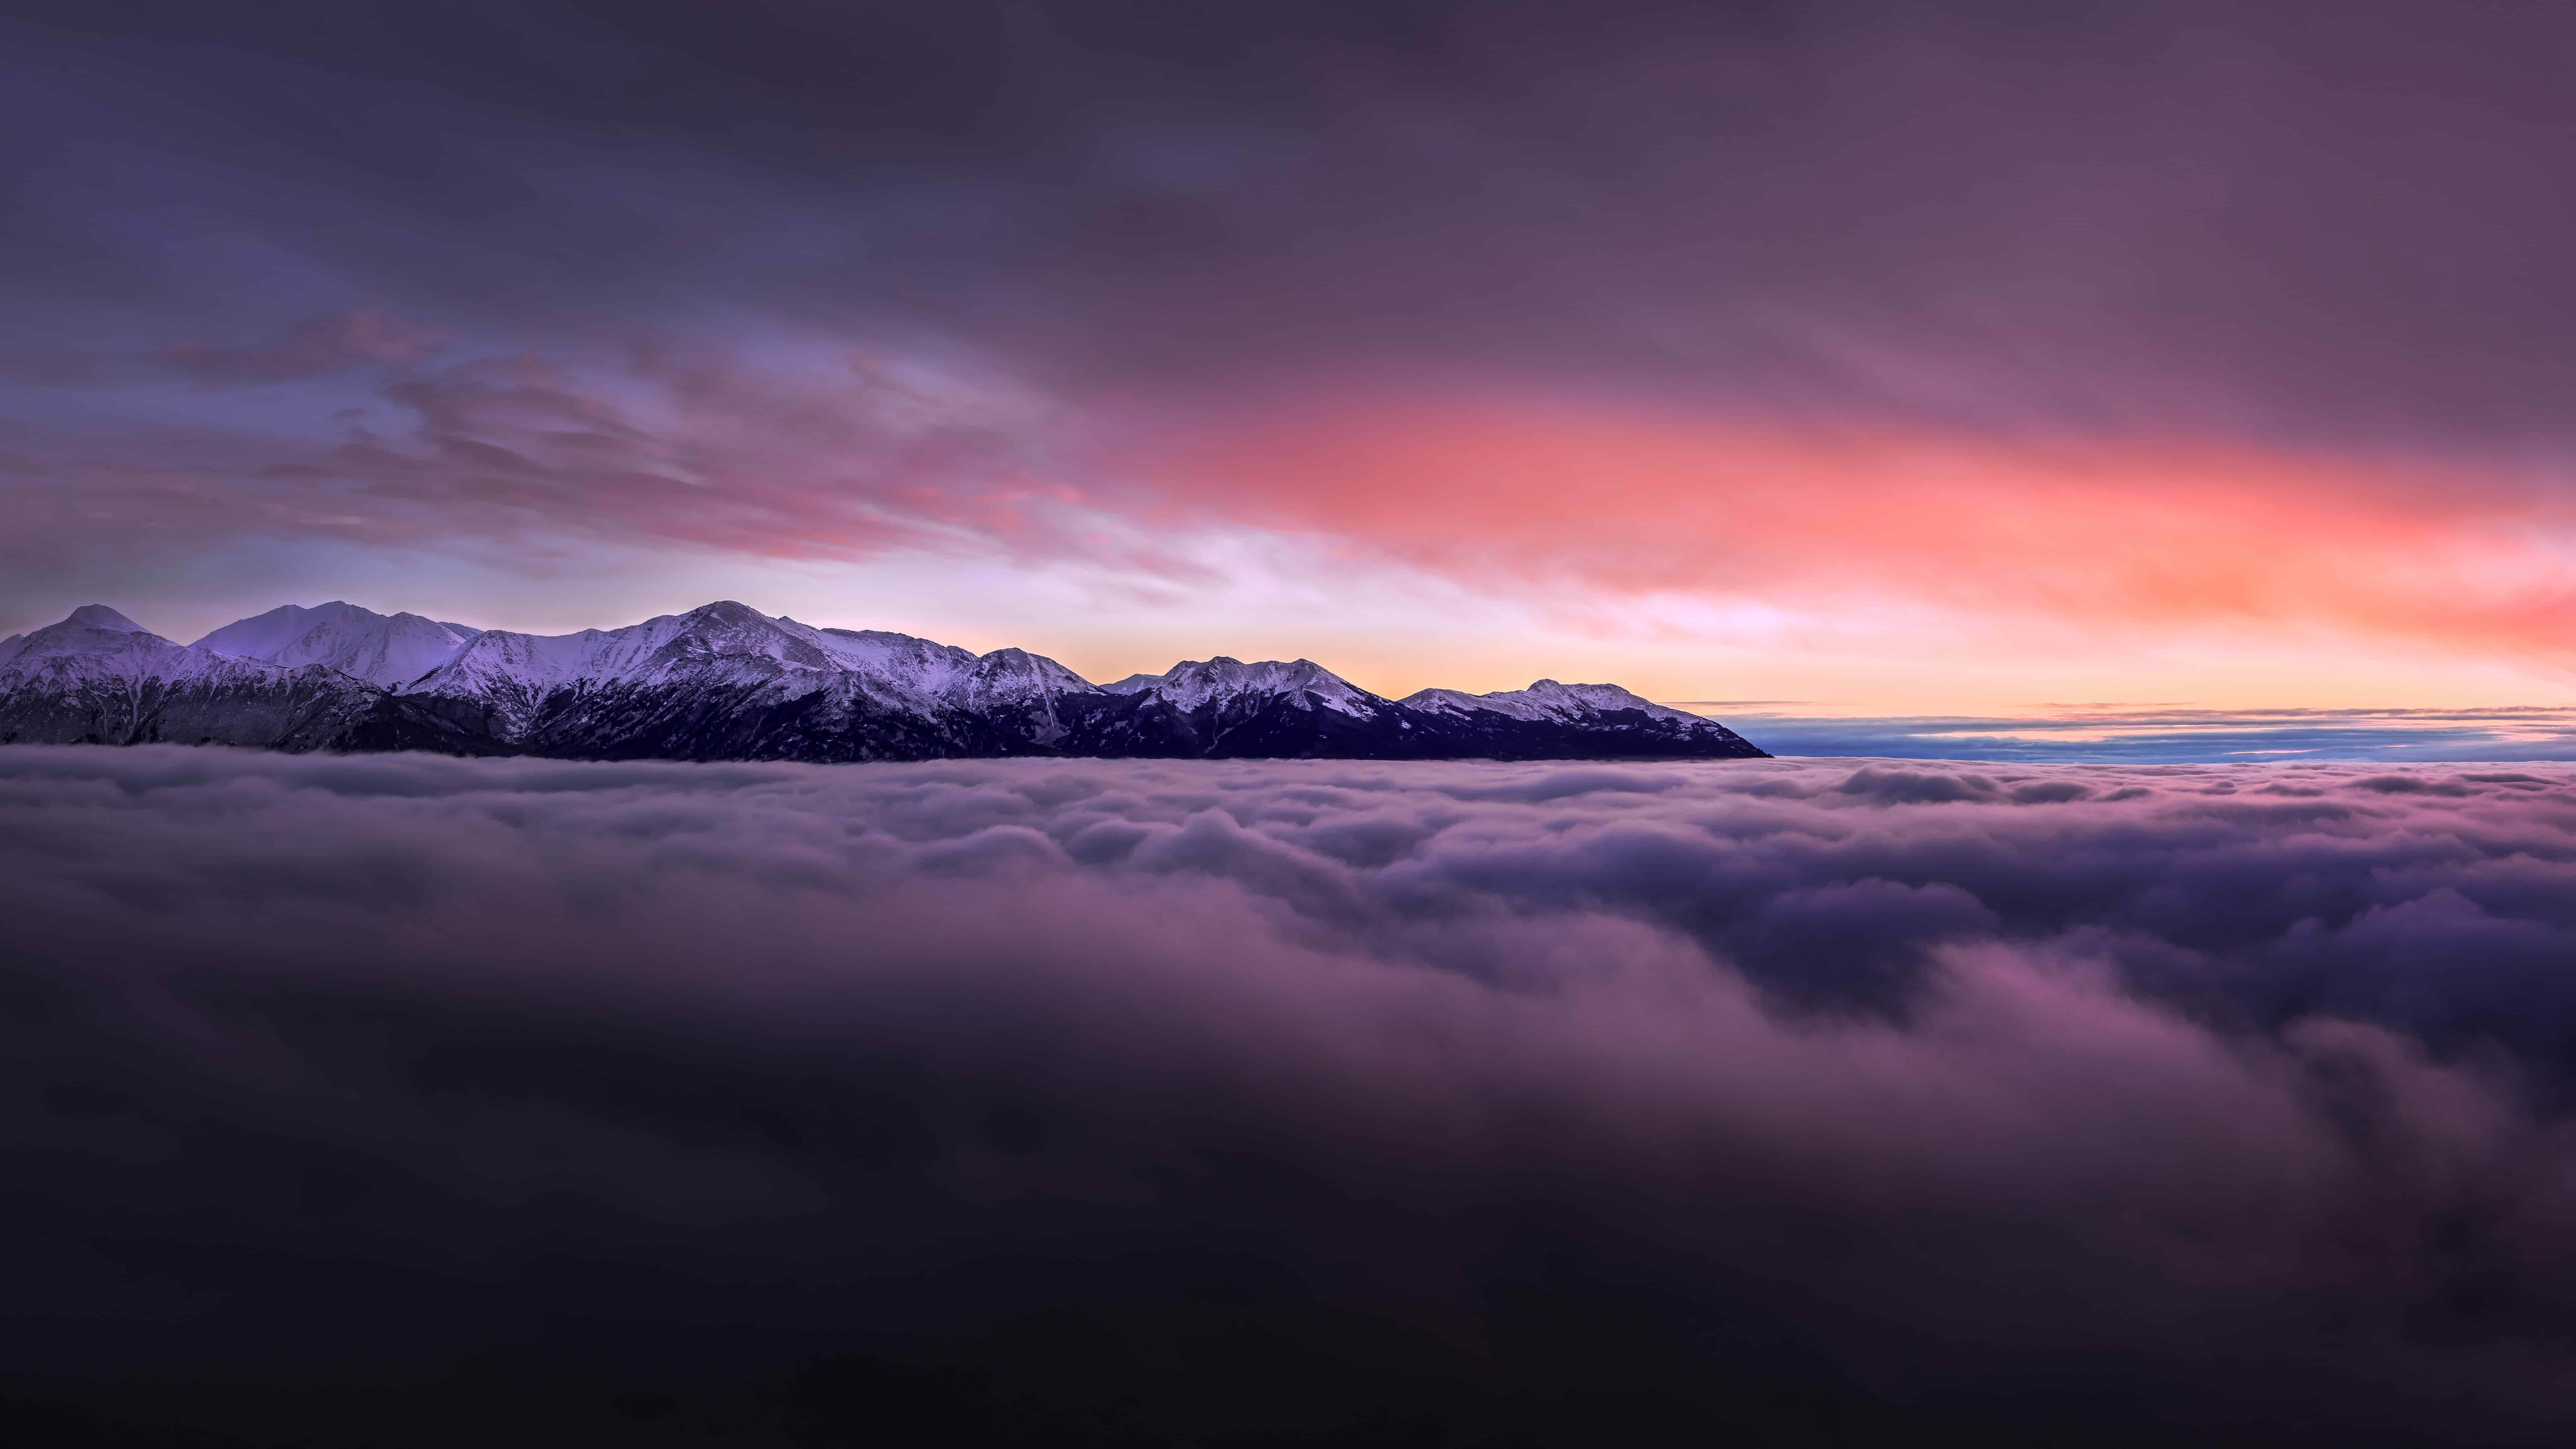 Sunset With Mountains Above Clouds 4K wallpaper 7680x4320